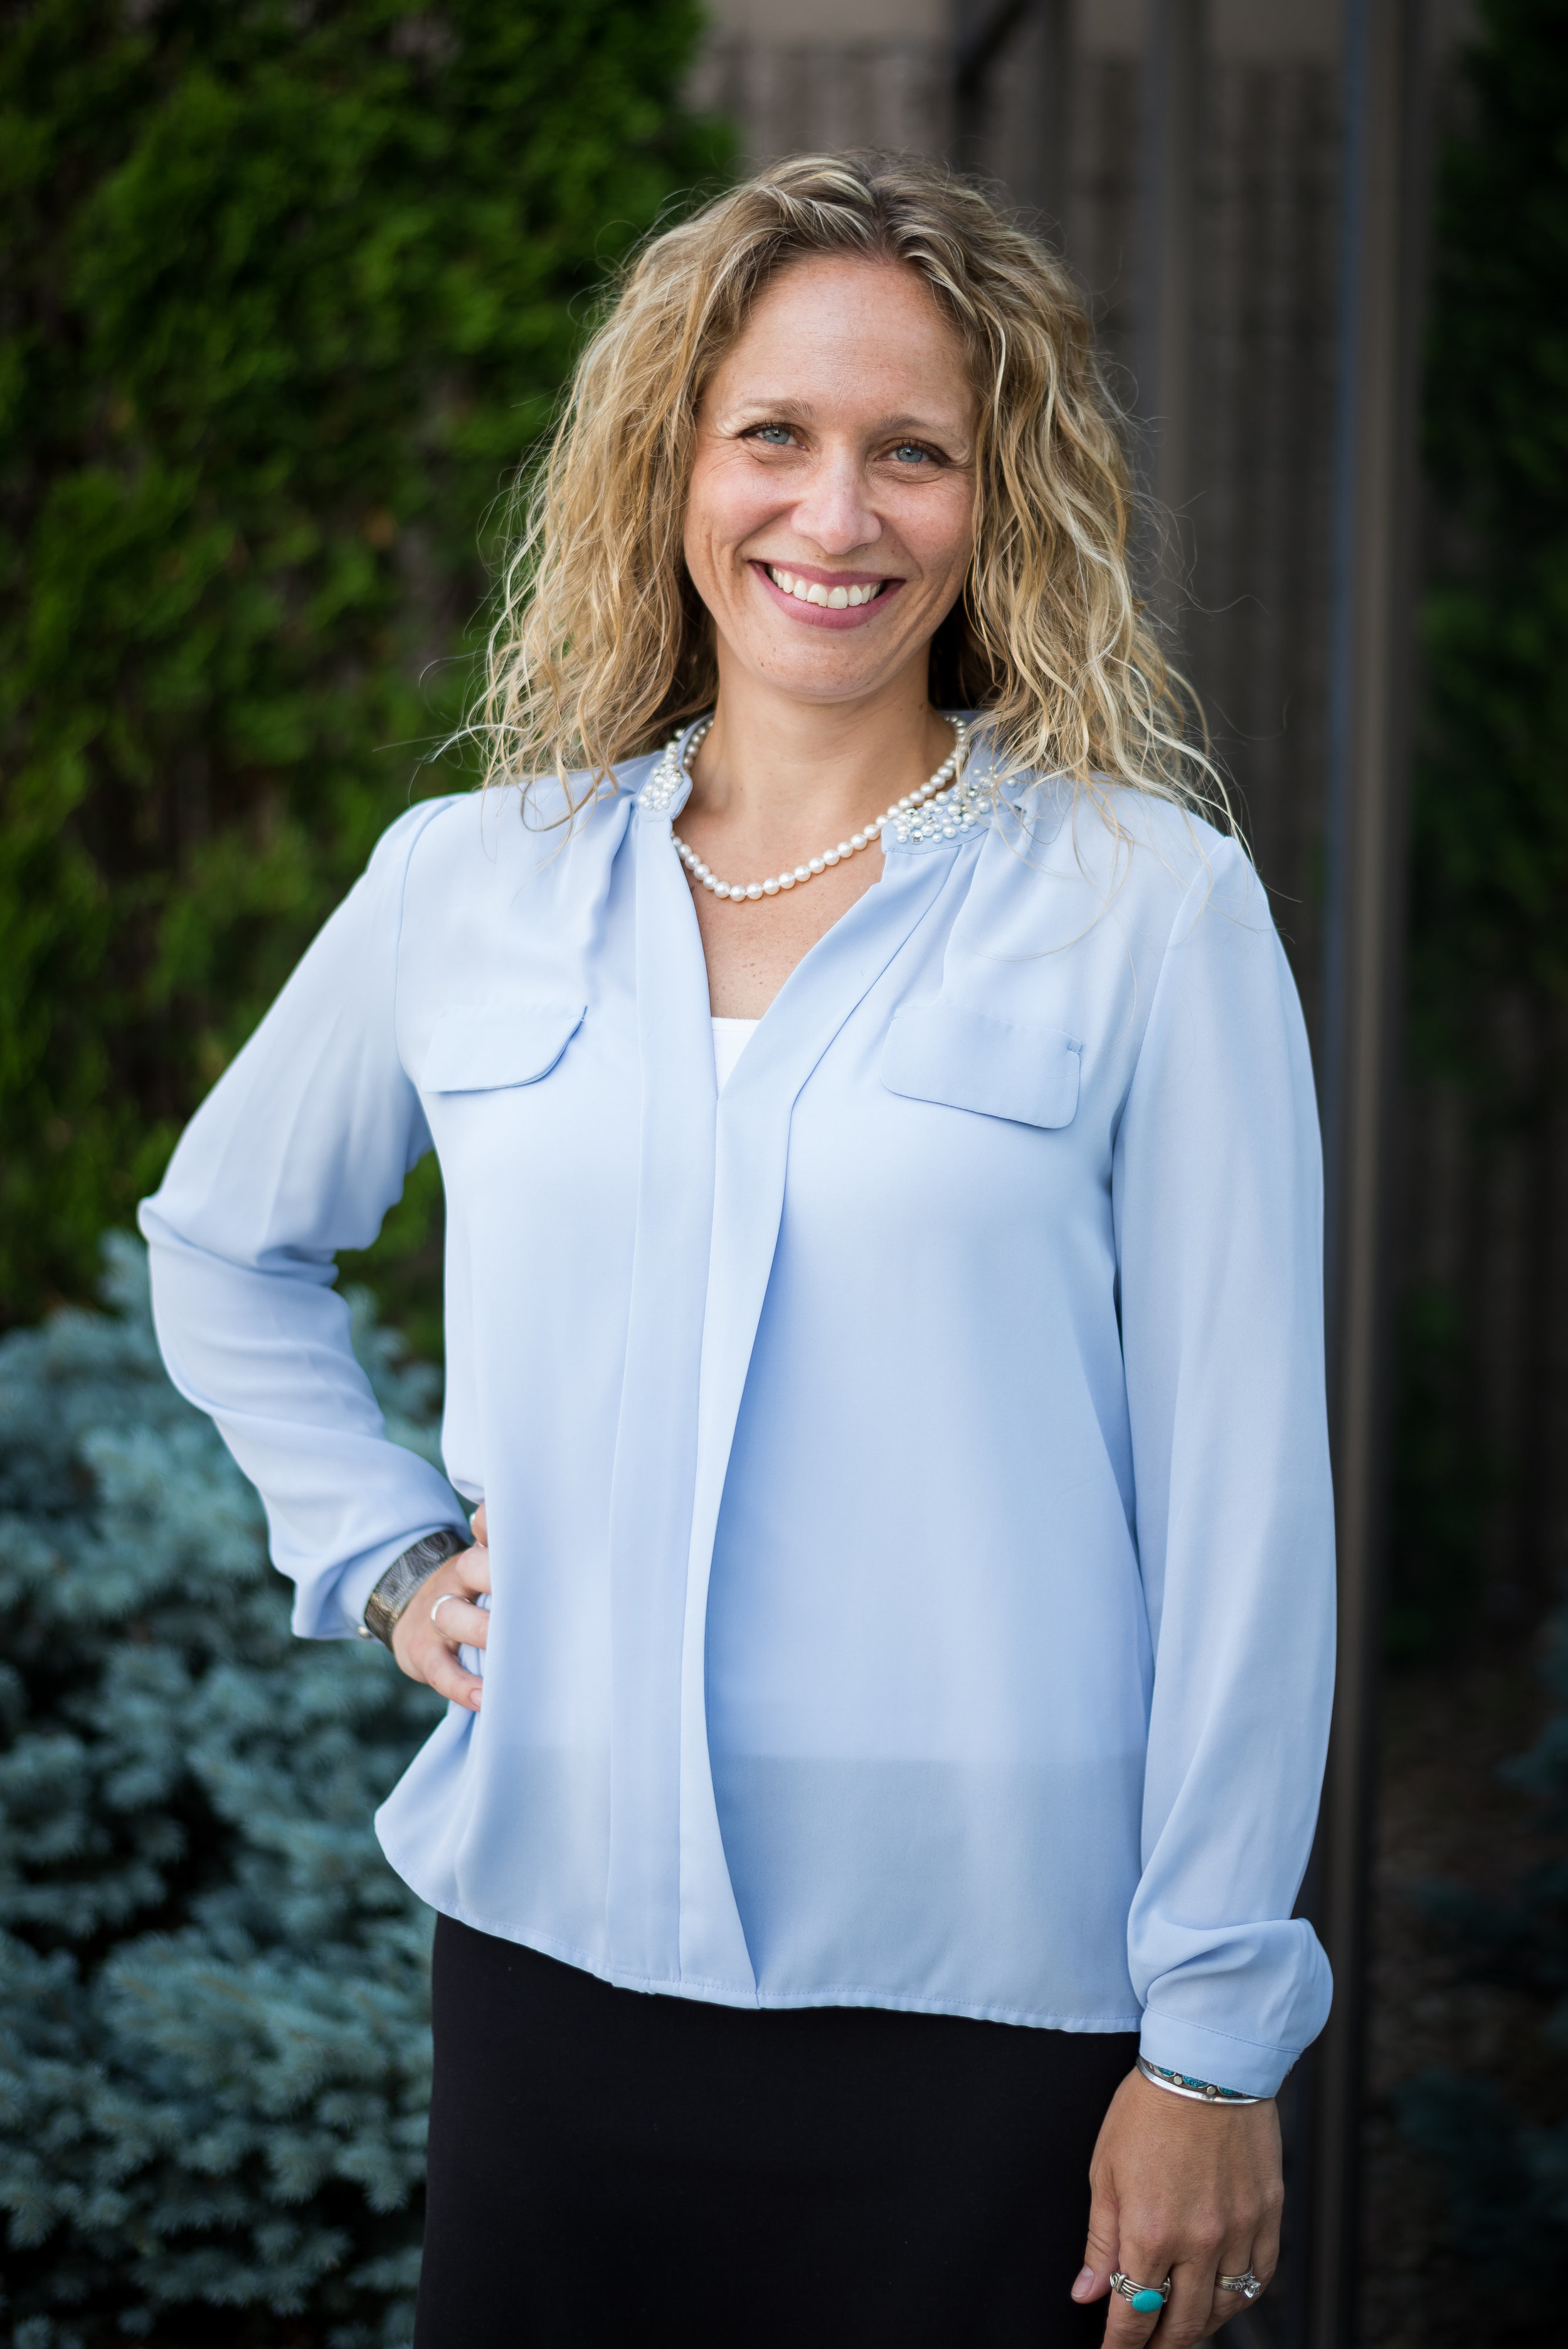 When she's not providing excellent service to our clients before and after close, Traci enjoys volunteering for children's causes, spending time outdoors, and enjoying her family.